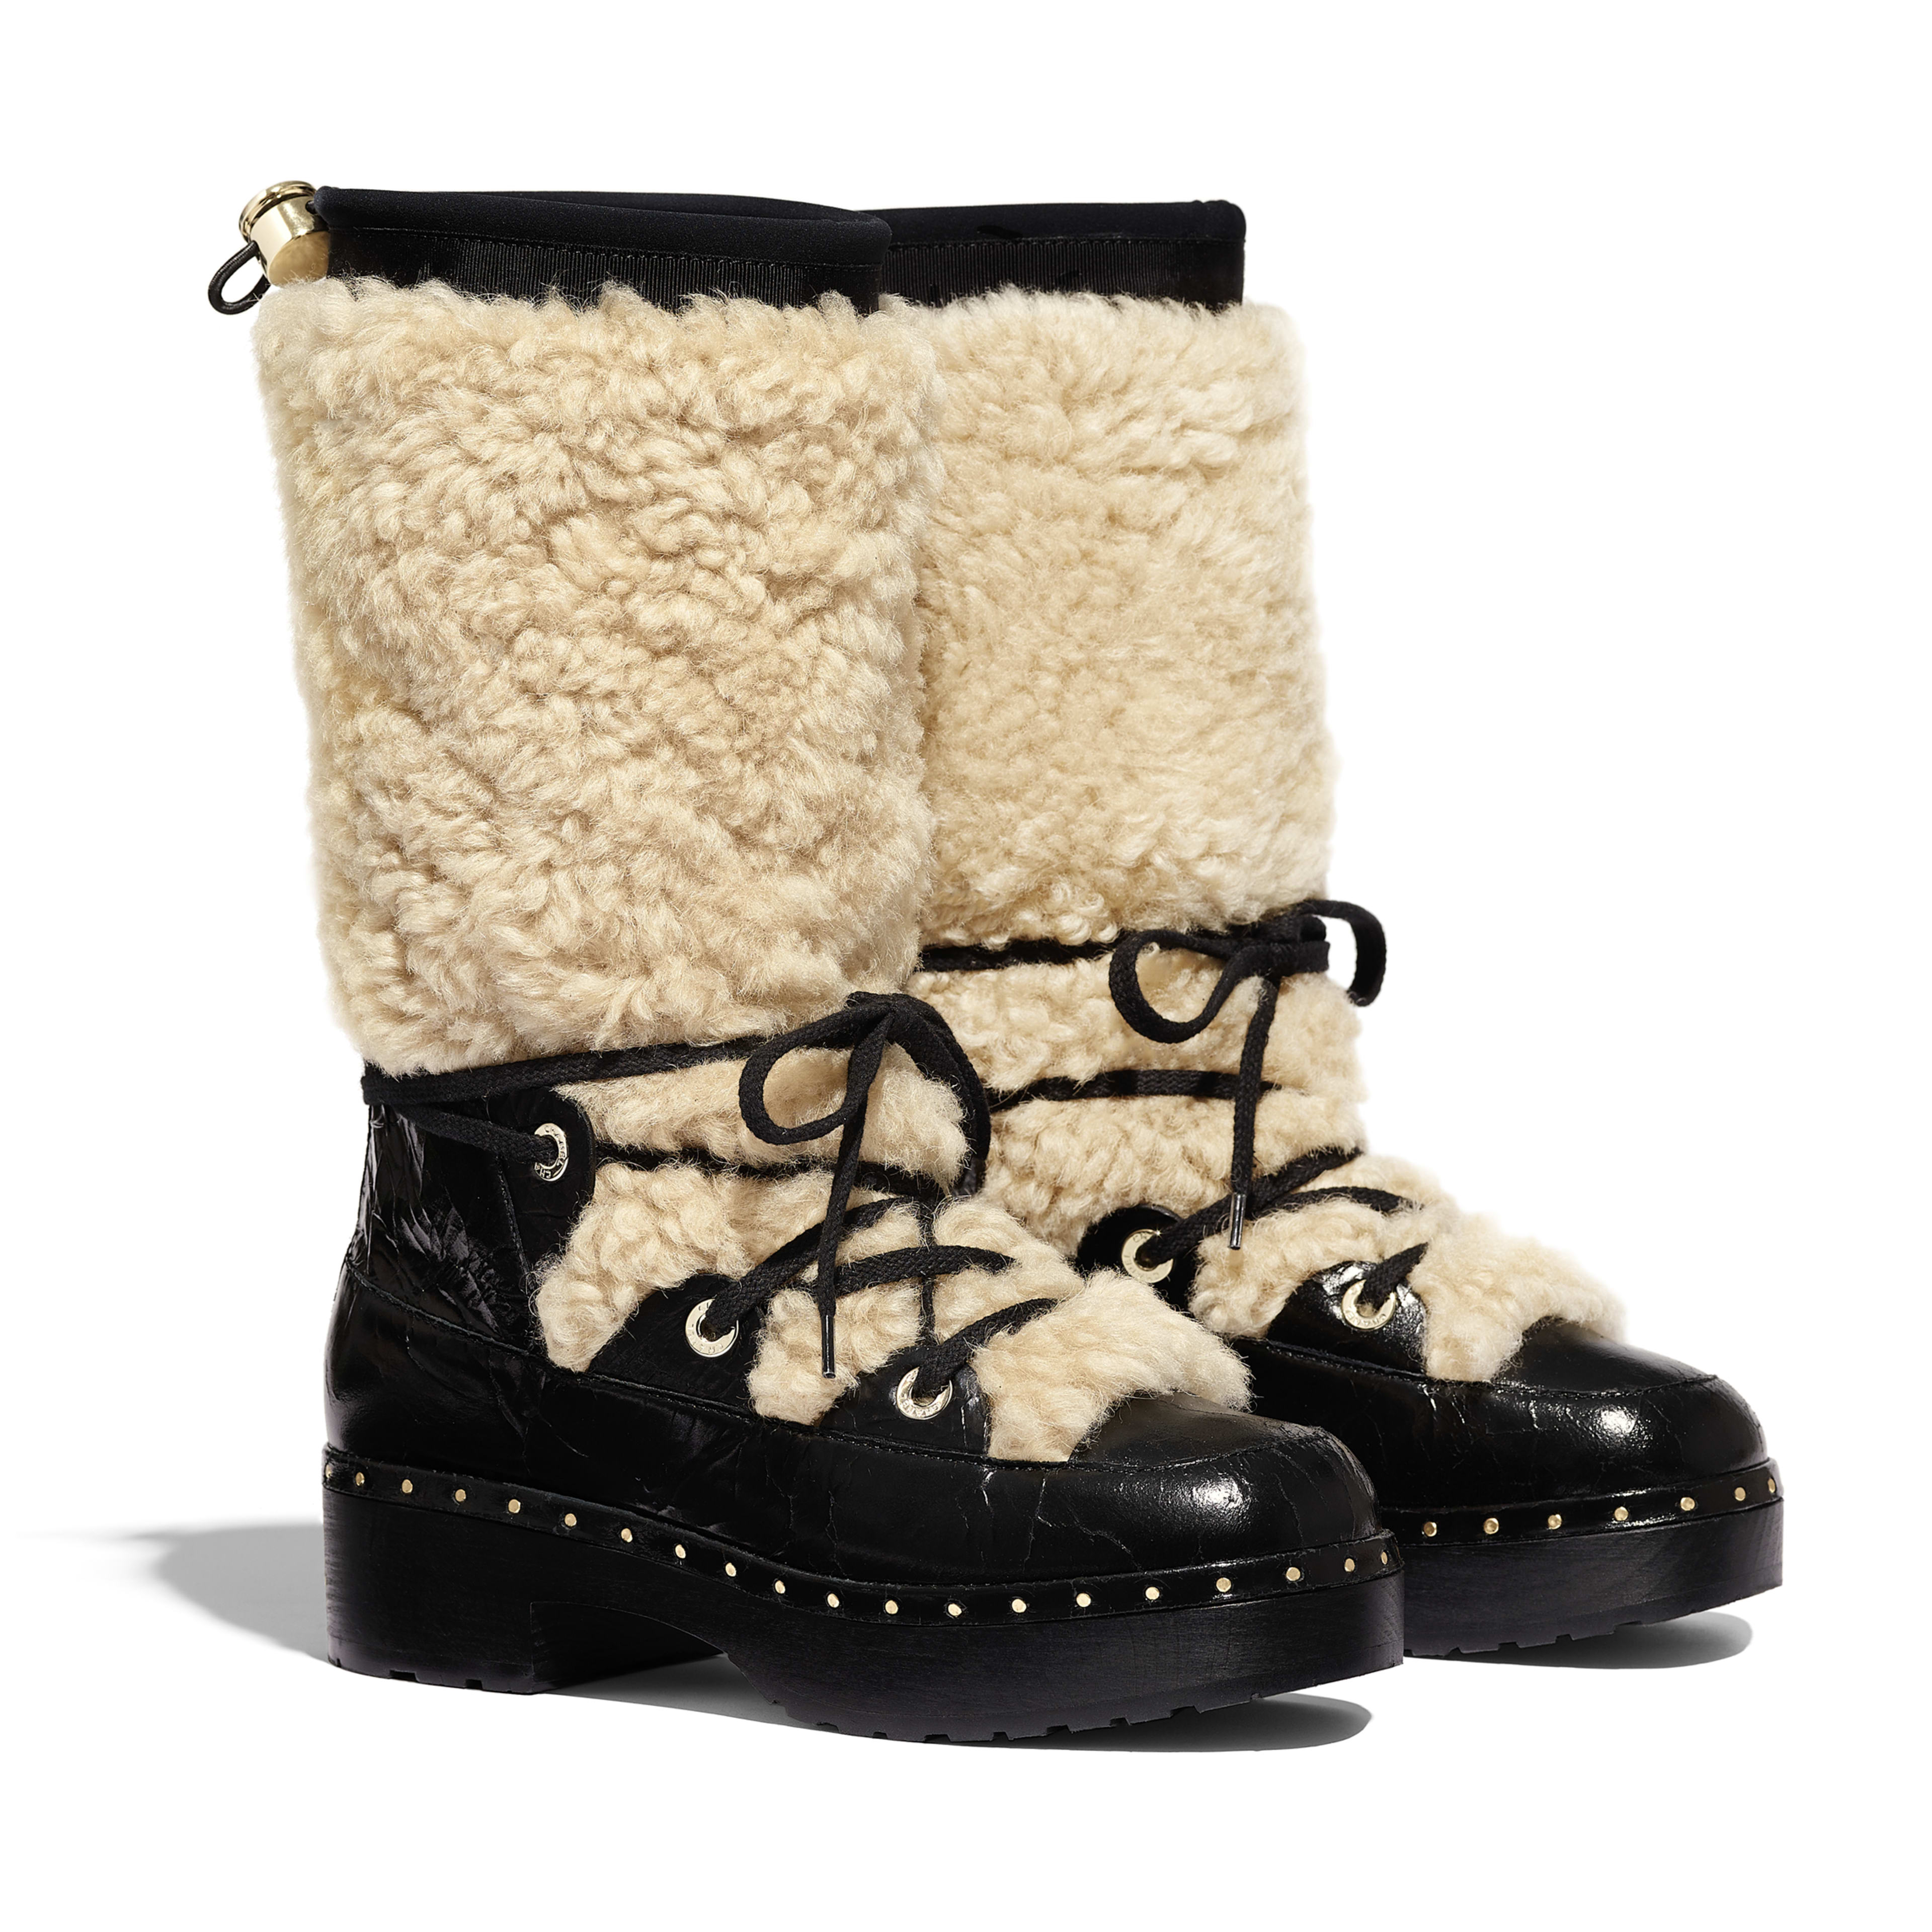 High Boots - Beige & Black - Shearling & Crackled Sheepskin - Alternative view - see full sized version